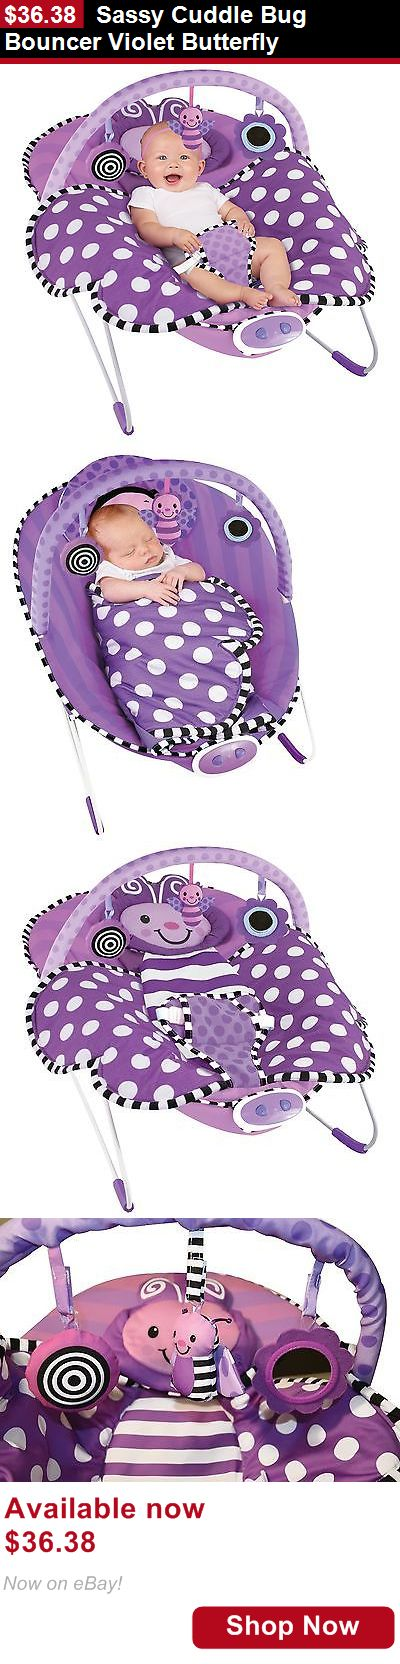 Baby bouncers and vibrating chairs: Sassy Cuddle Bug Bouncer Violet Butterfly BUY IT NOW ONLY: $36.38